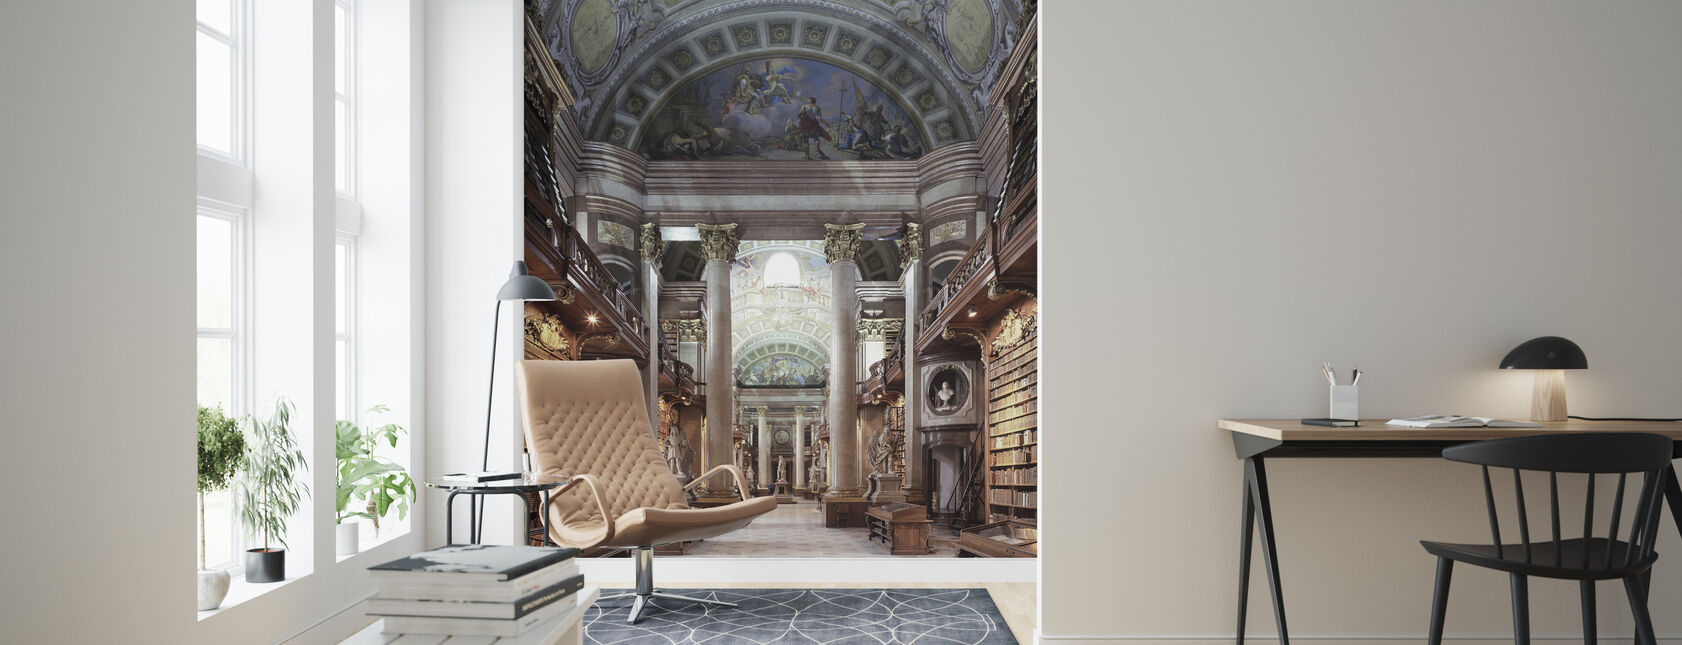 Imperial Library in Wien - Wallpaper - Living Room